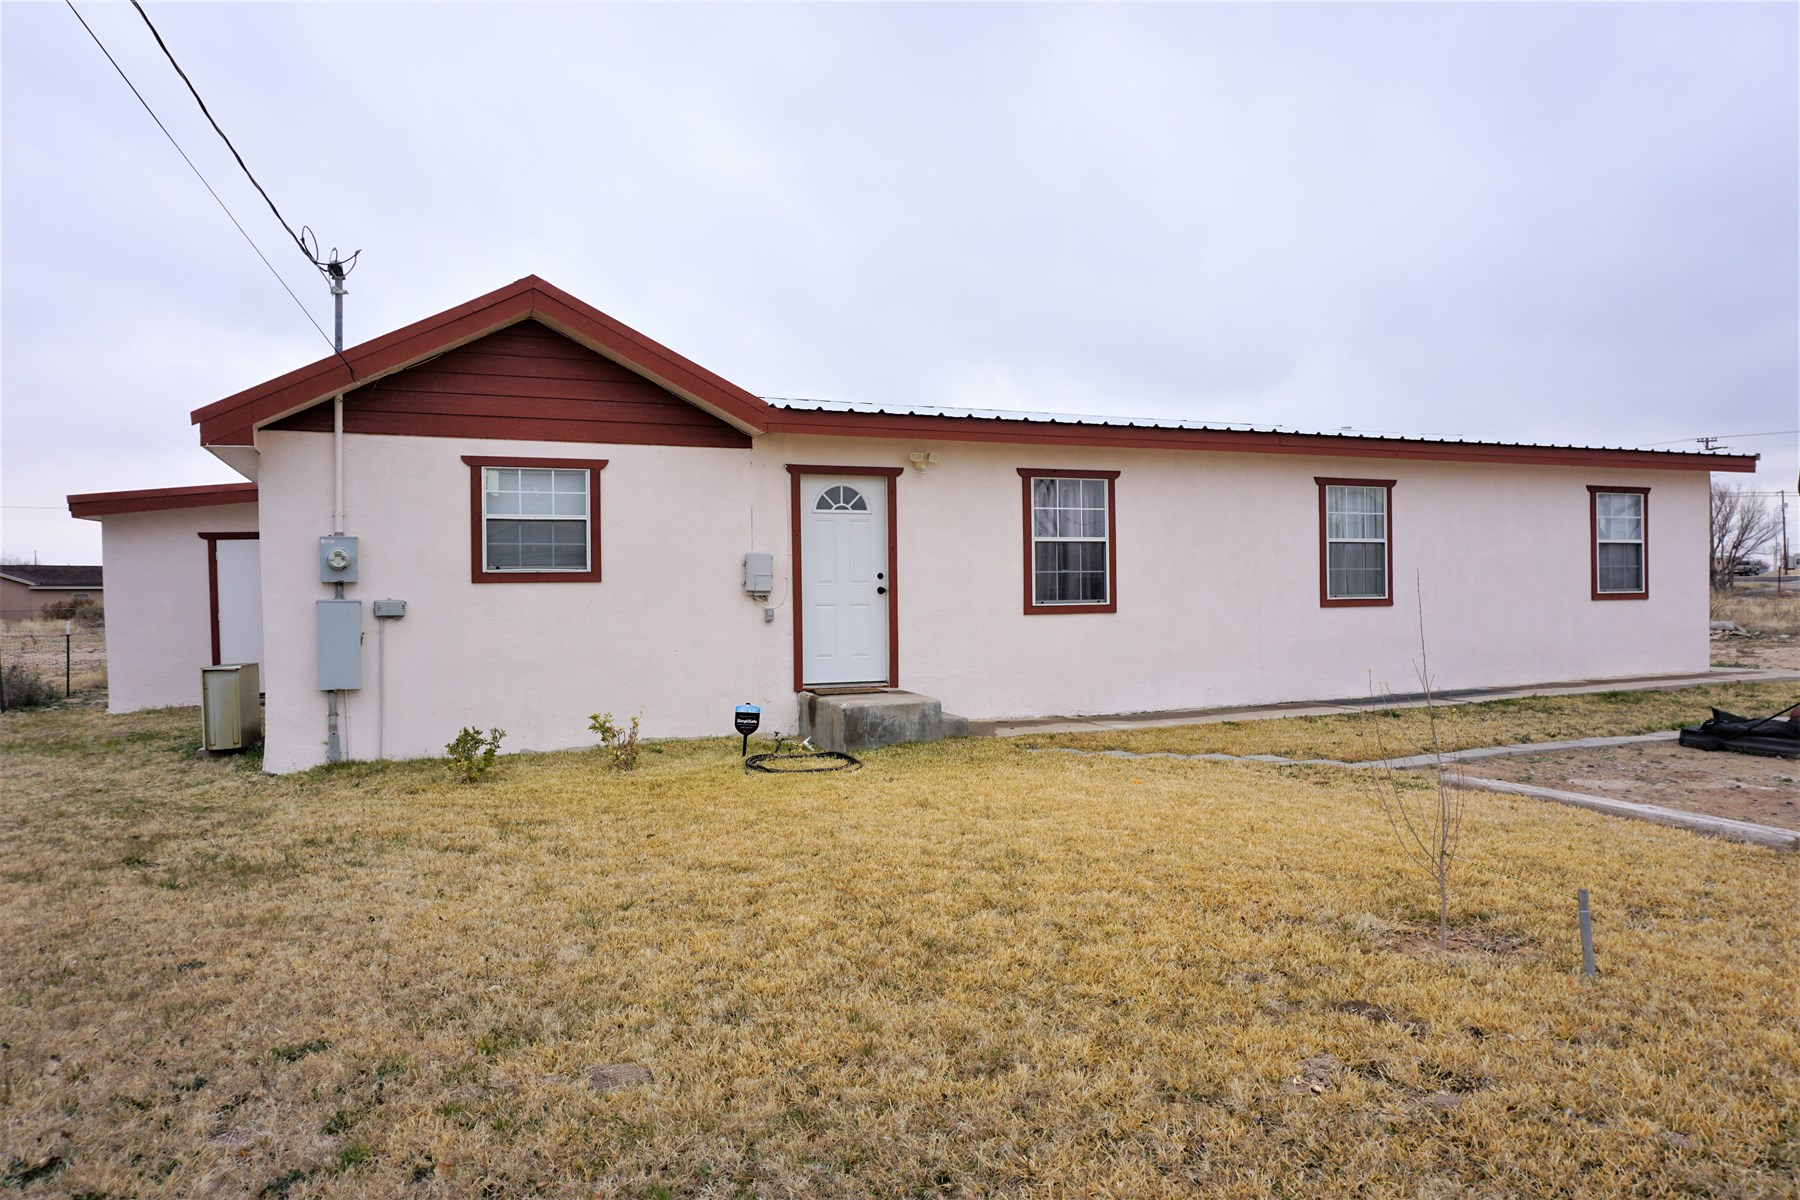 FOUR BEDROOM COUNTRY HOUSE FOR SALE IN FORT STOCKTON, TX